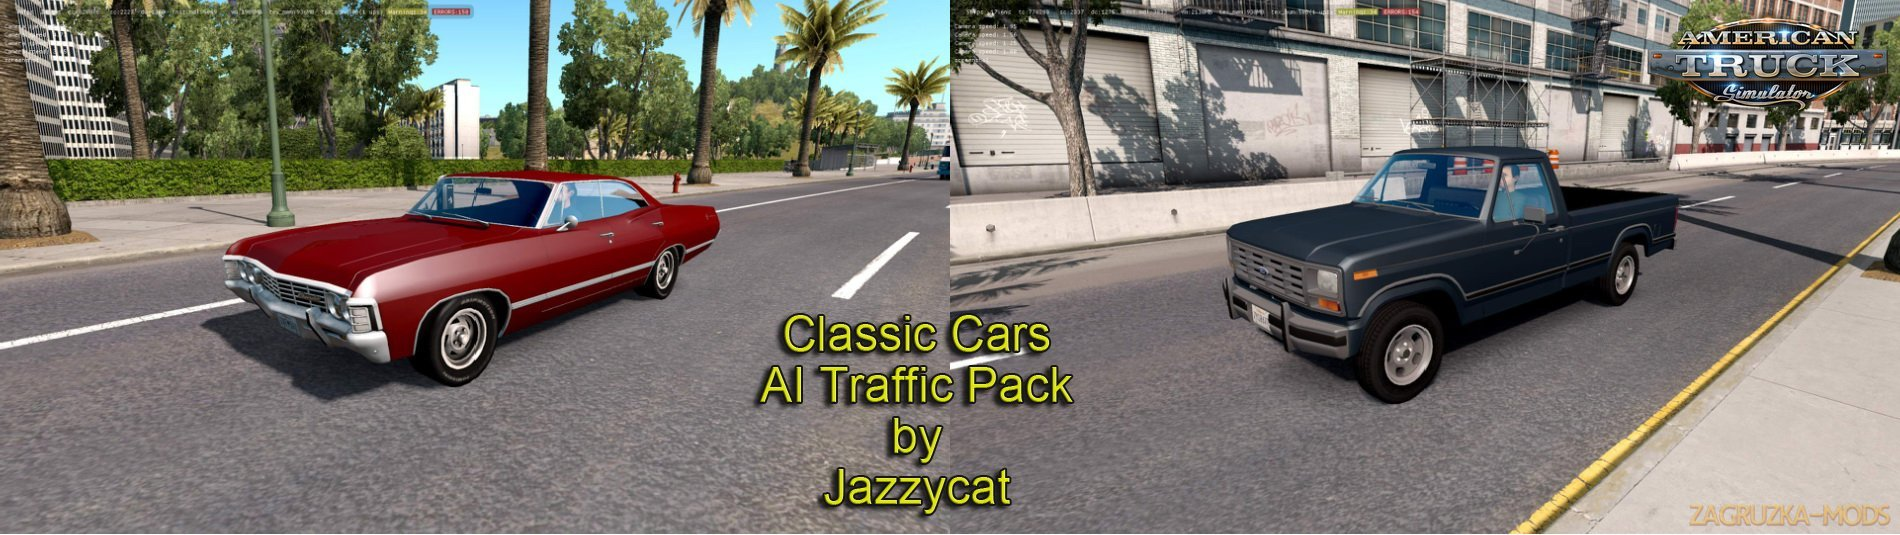 Classic cars AI Traffic Pack v1.7 by Jazzycat